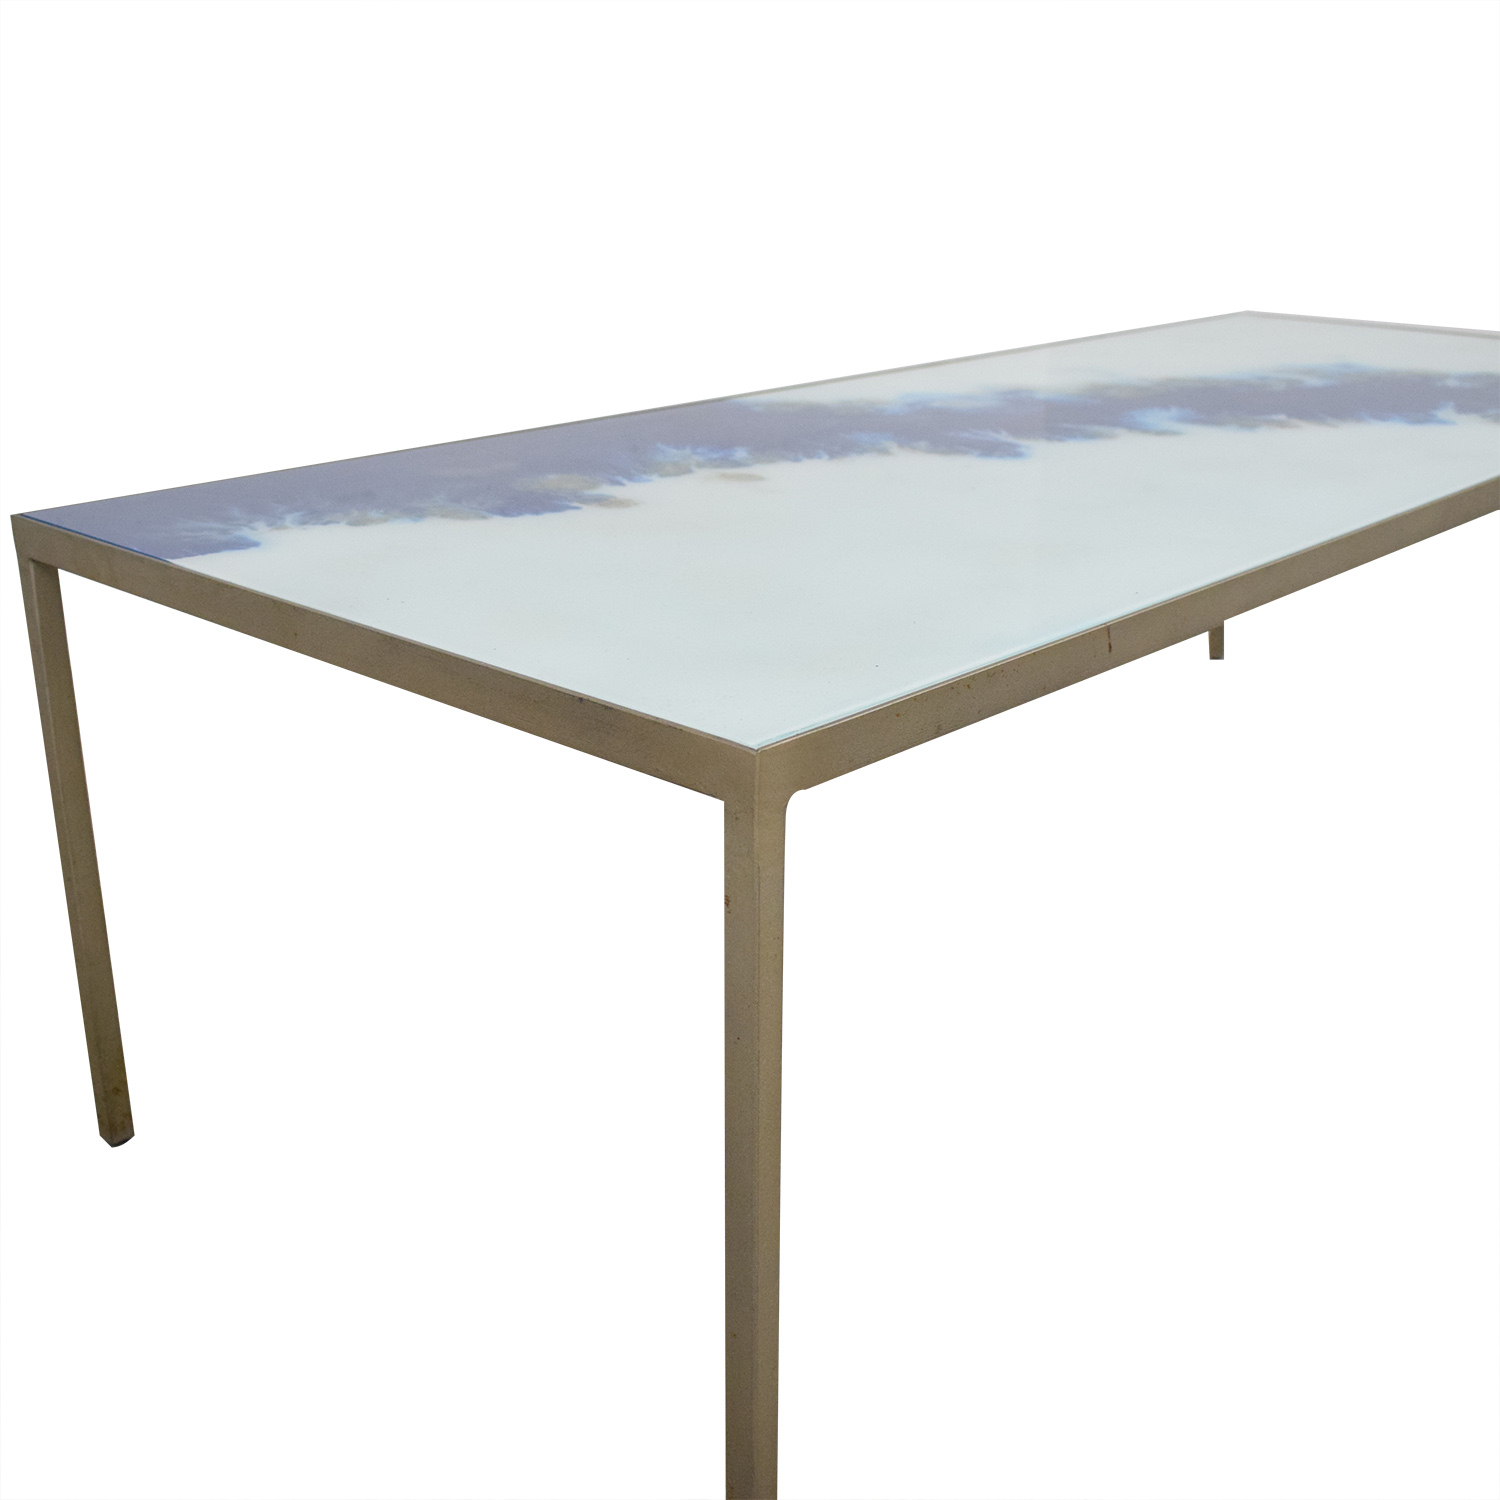 West Elm West Elm Cosmos Coffee Table price